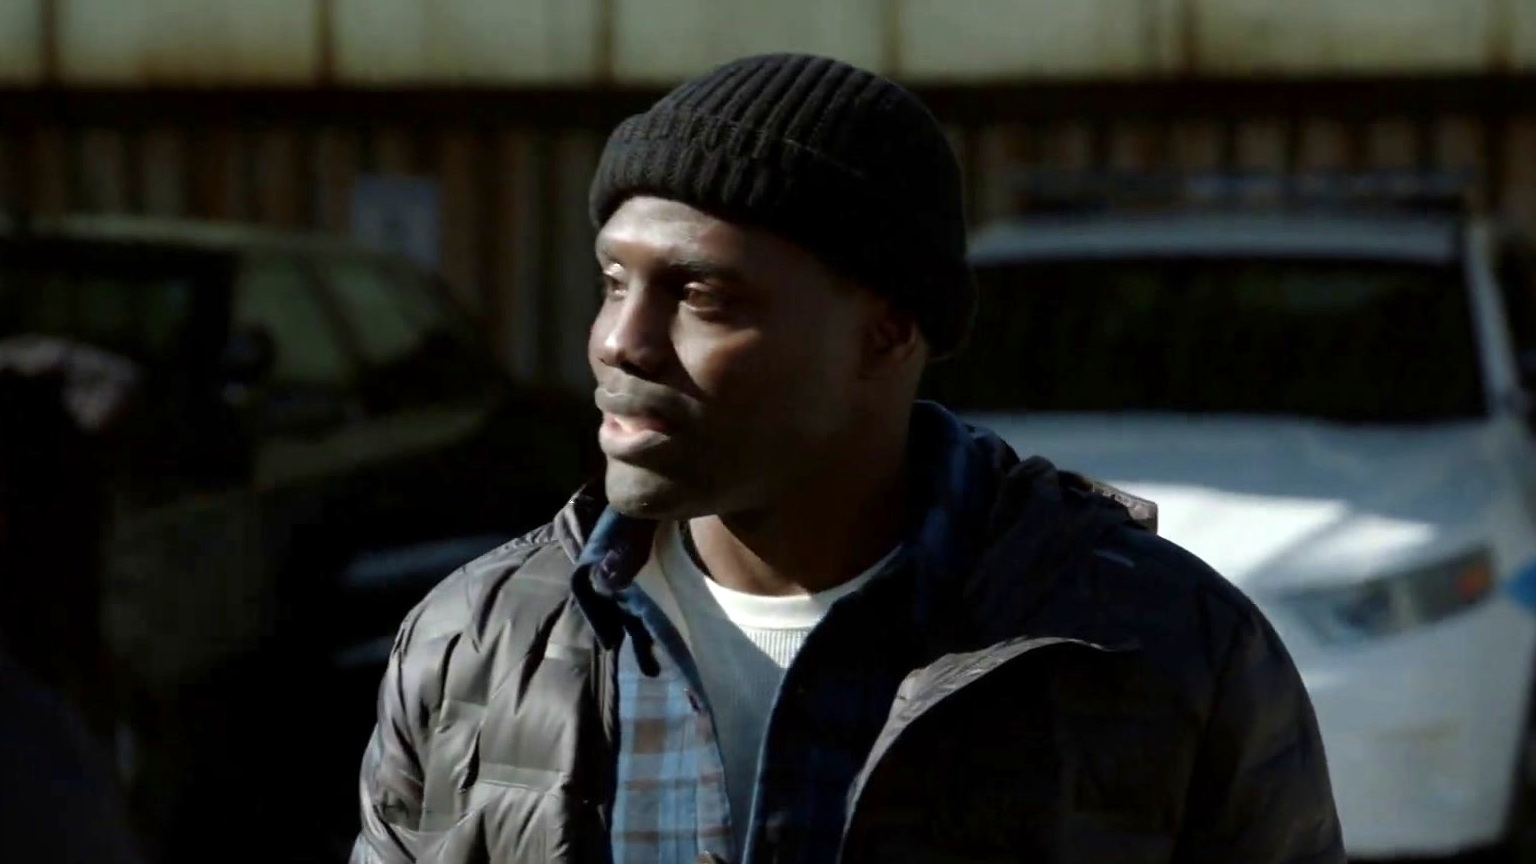 Chicago P.D.: Atwater Schools A Trainee